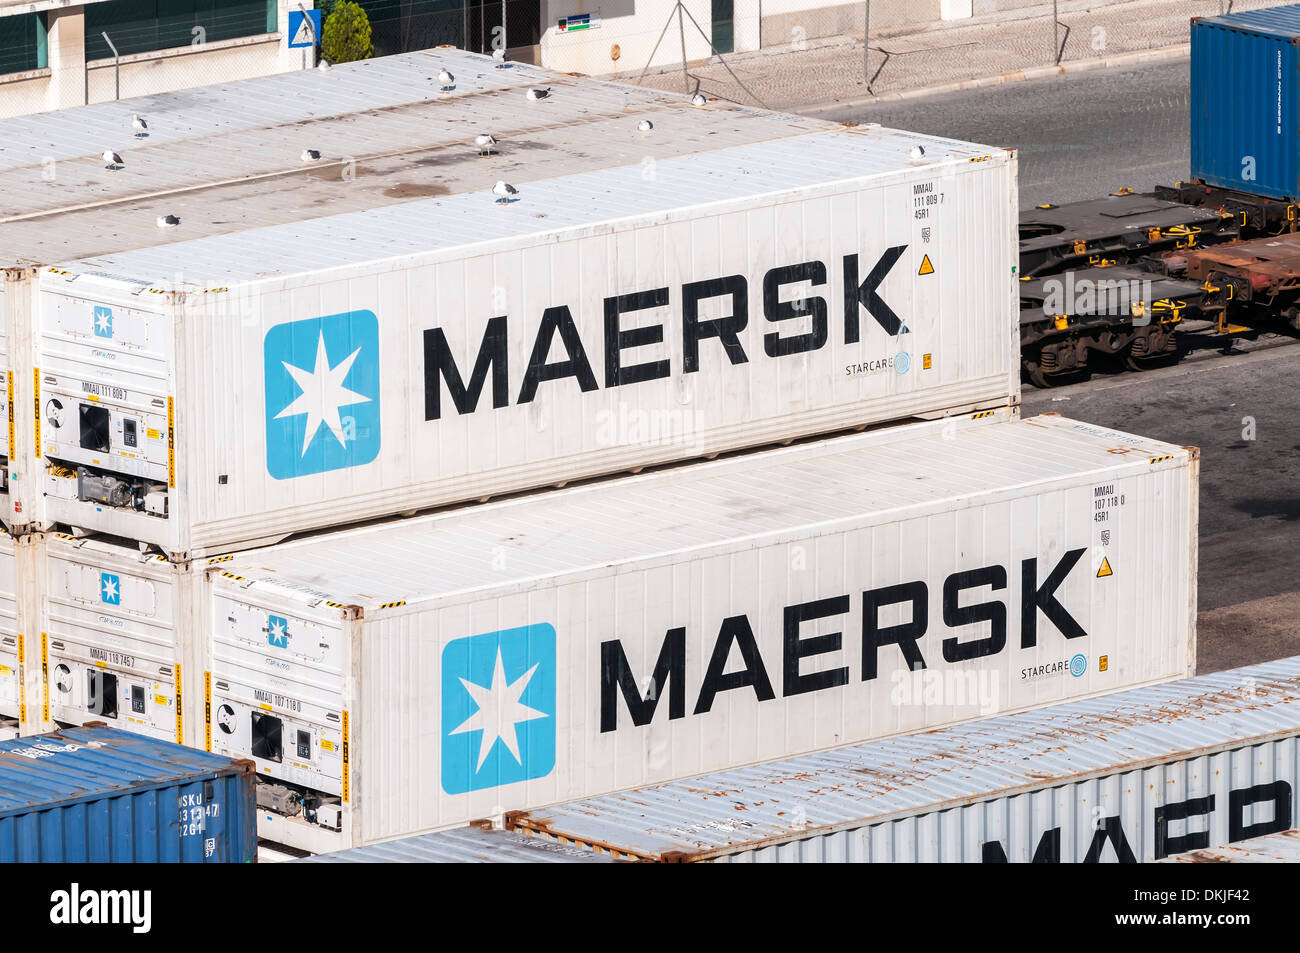 Shipping Container at the Dock - Maersk - Stock Image